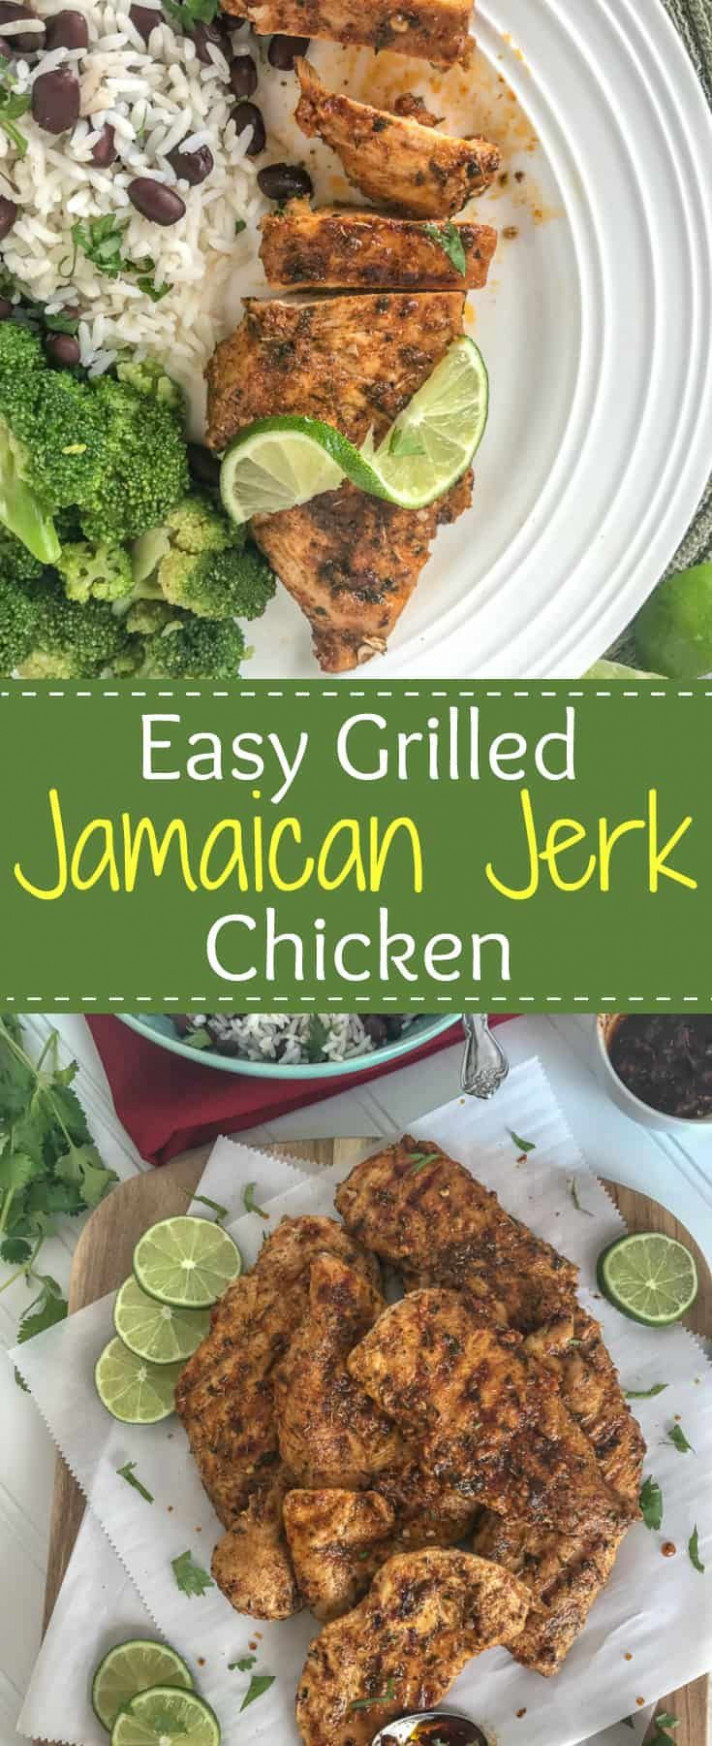 Easy Grilled Jamaican Jerk Chicken - chicken recipes on pinterest